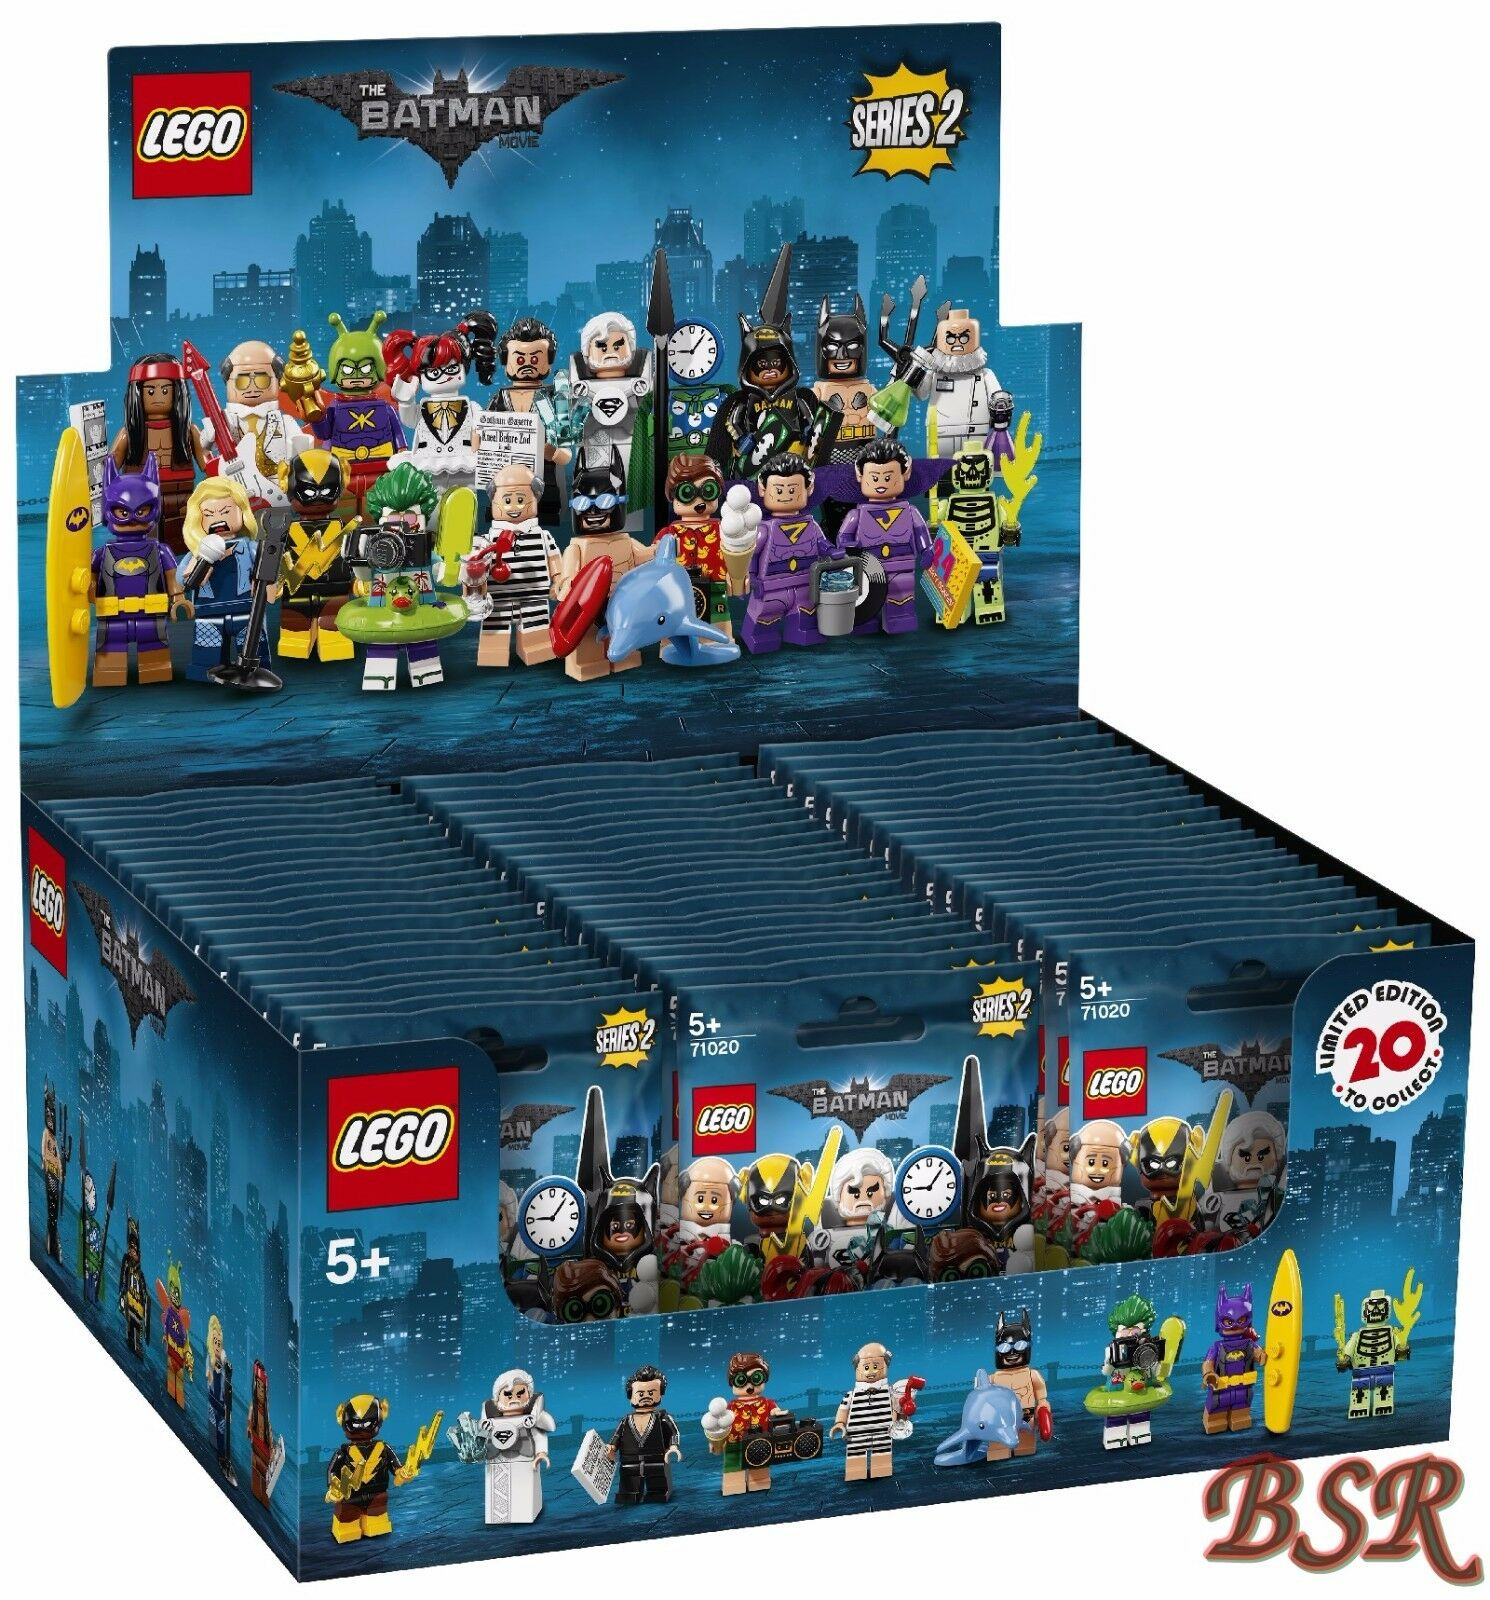 71020 LEGO ® Complet Display Scellé The Batman Movie 60 pochettes 0. - Expédition